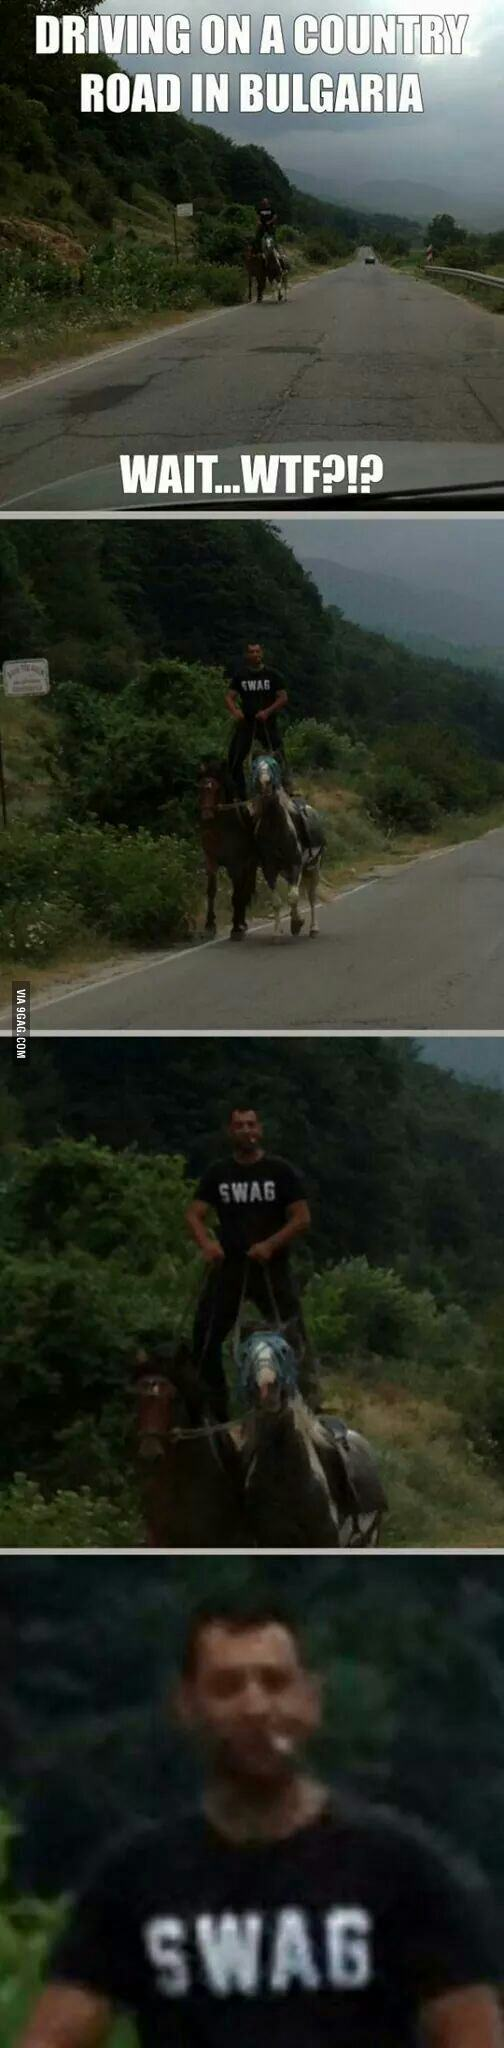 Driving in Bulgaria.. WTF? SWAG